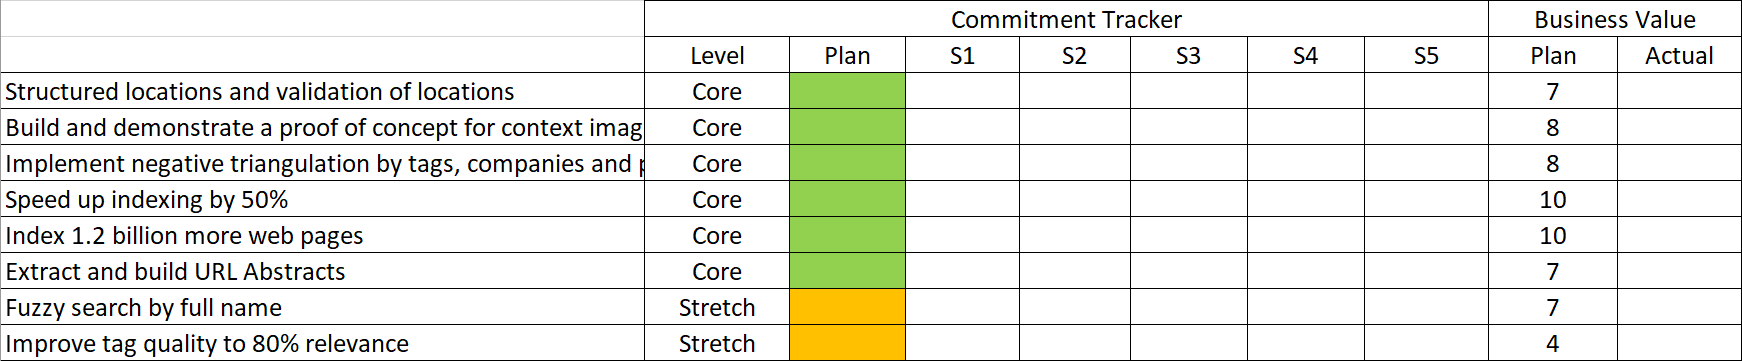 Figure 1: The Initial Commitment Tracker